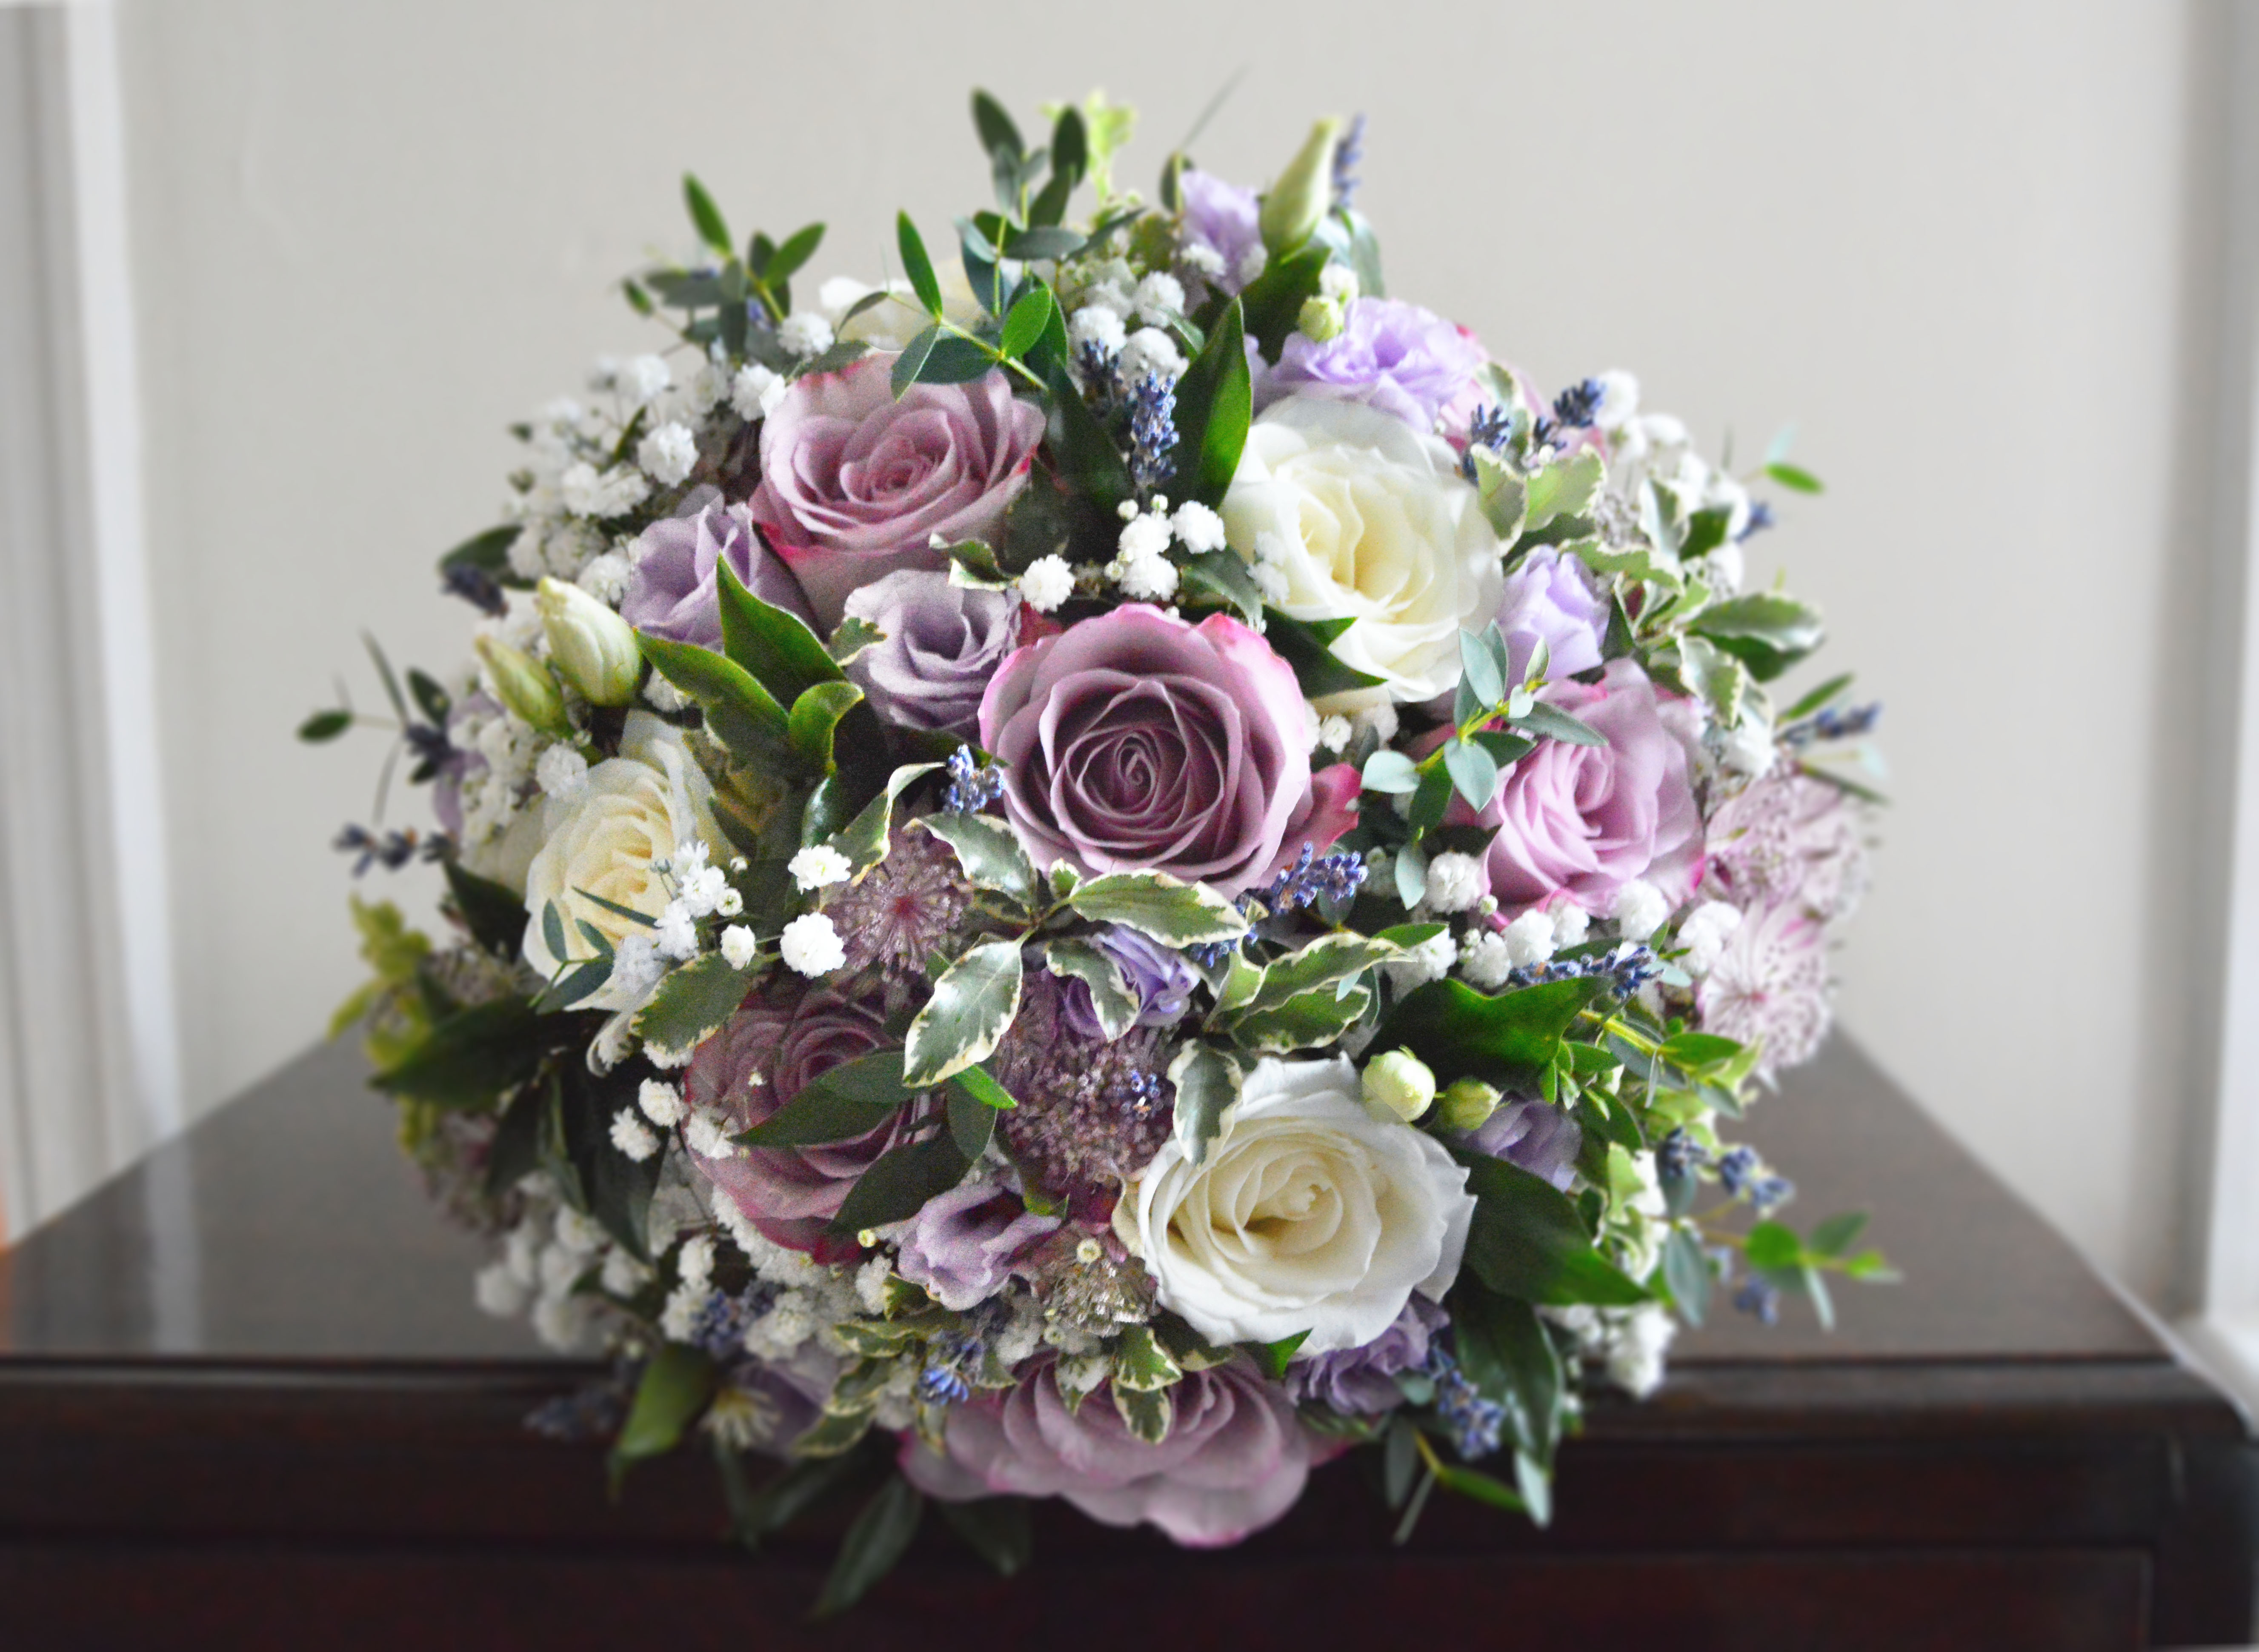 Wedding flowers leeds dusky pink lilac gyp bridal bouquetwedding wedding flowers leeds dusky pink lilac gyp bridal bouquet mightylinksfo